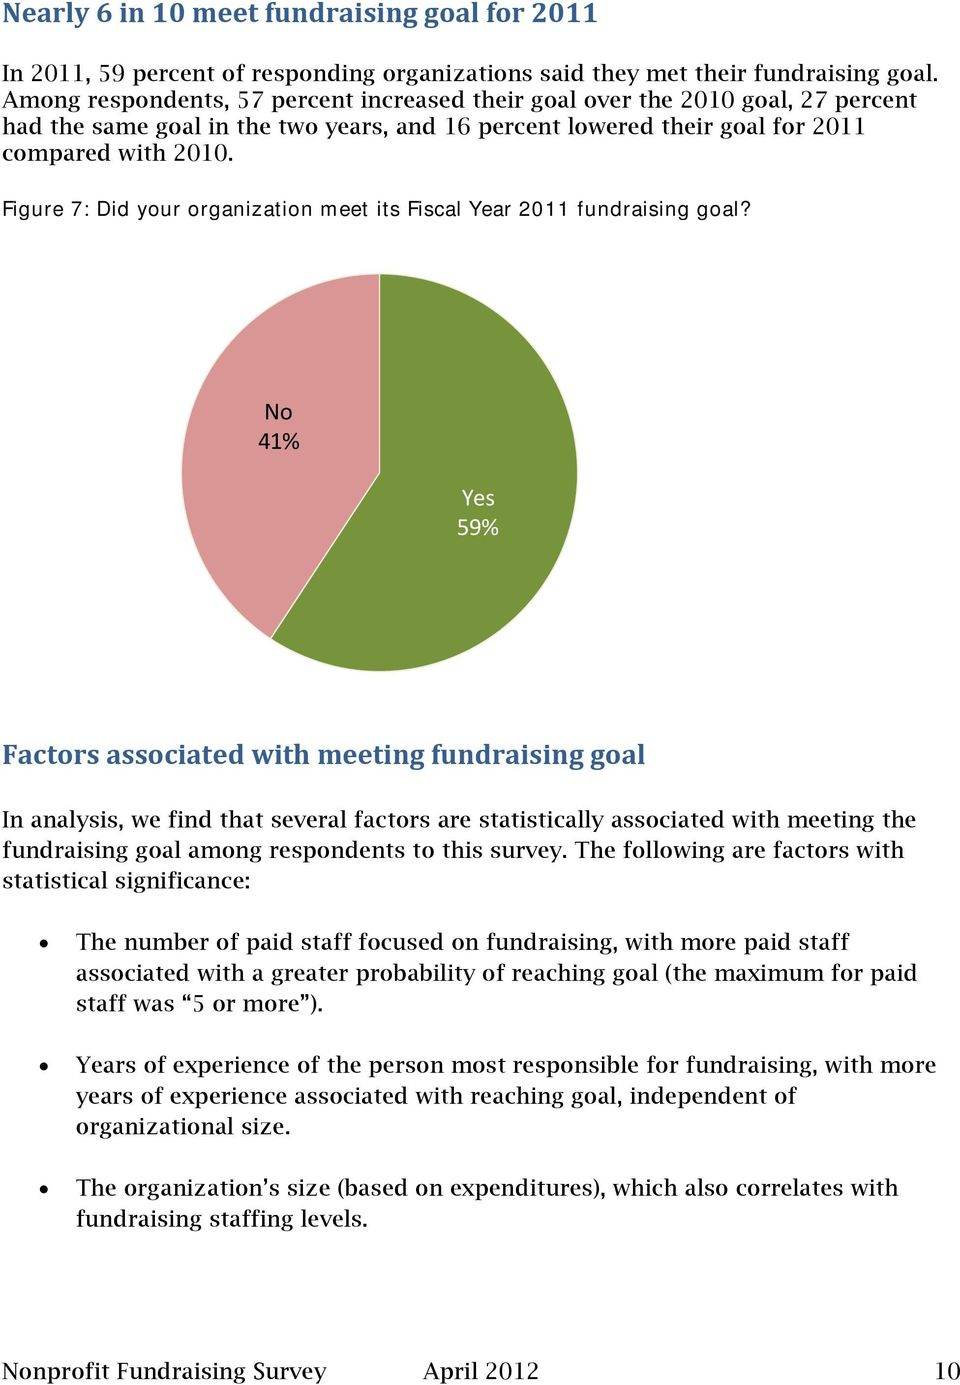 Figure 7: Did your organization meet its Fiscal Year 2011 fundraising goal?